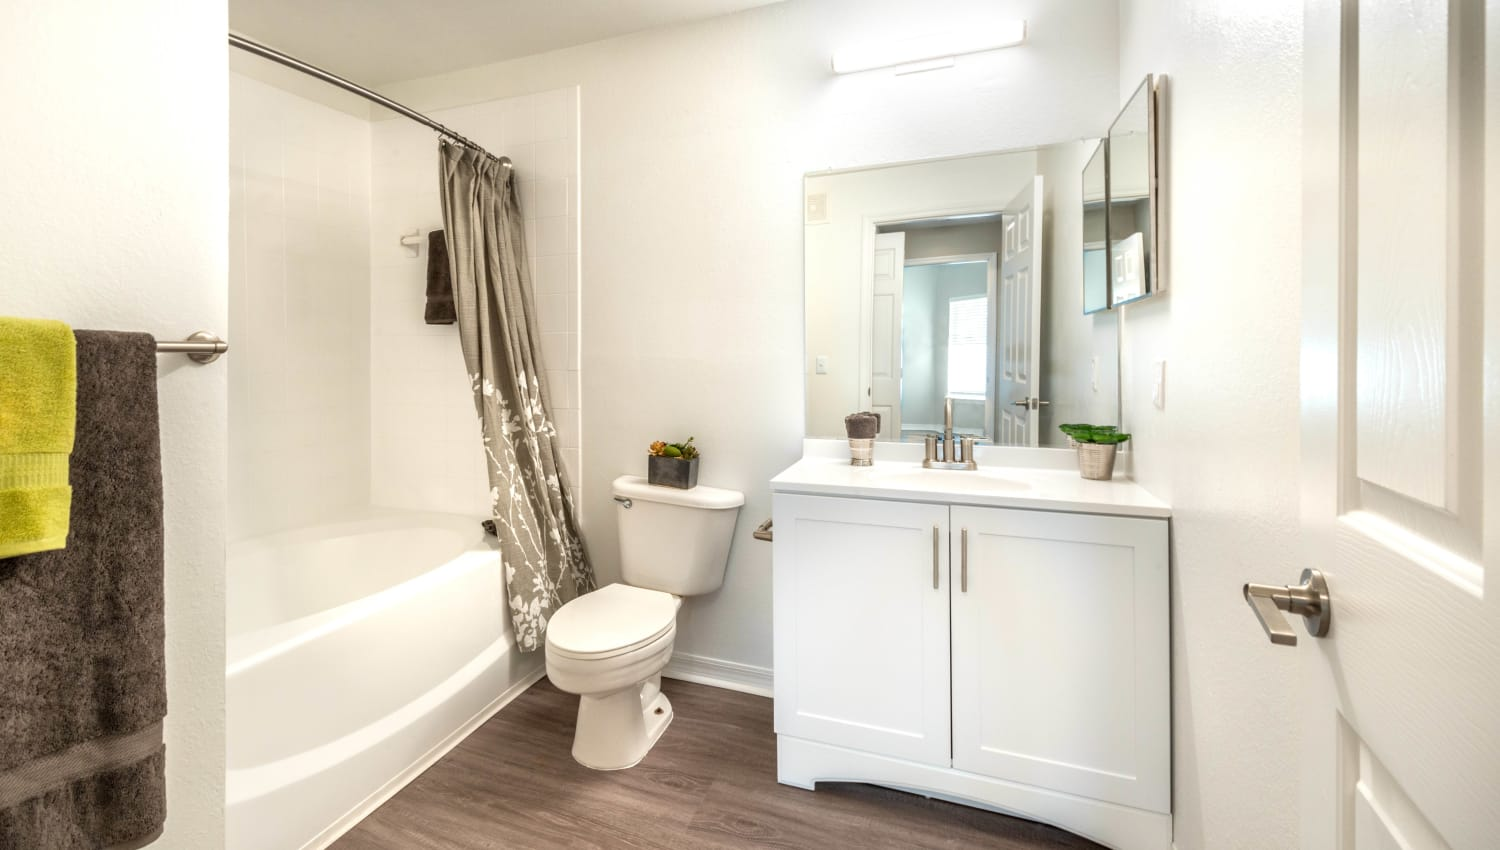 Bright bathroom with a large vanity mirror in a model home at Cape House in Jacksonville, Florida